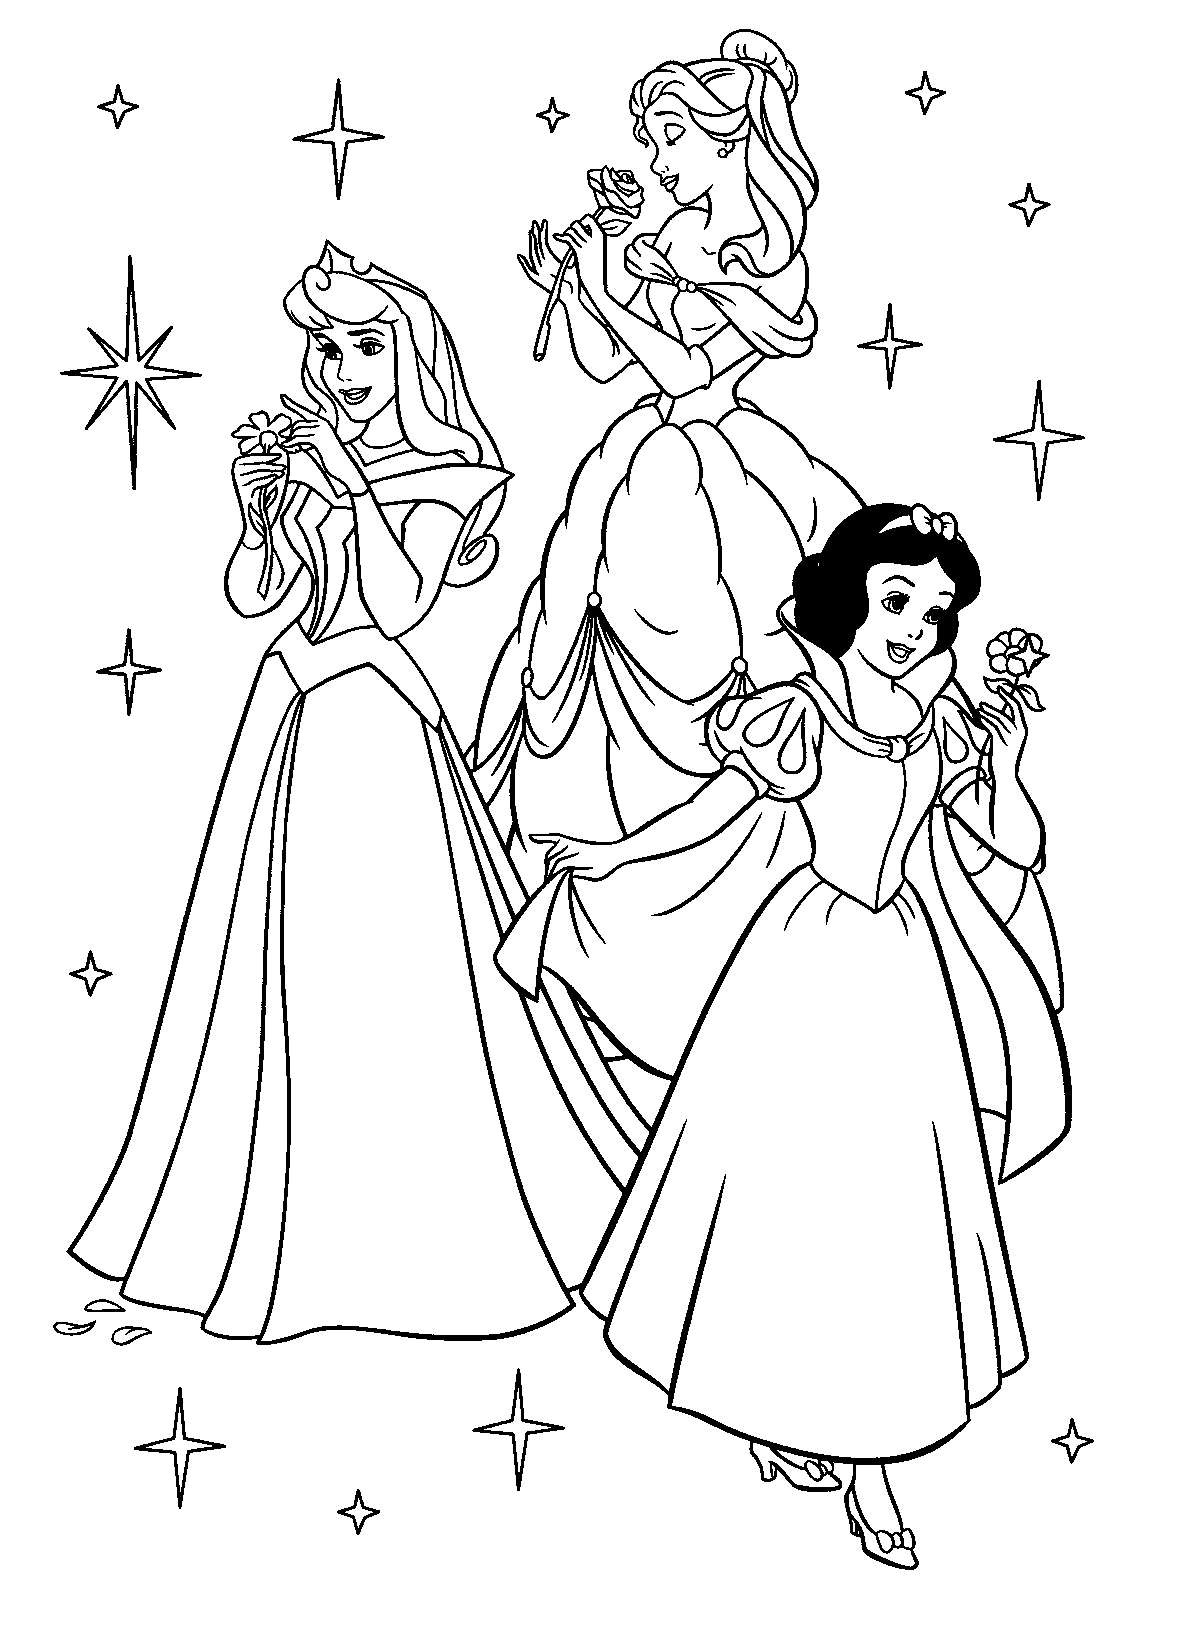 disney princess coloring pages - Free Printable Disney Coloring Pages For Kids